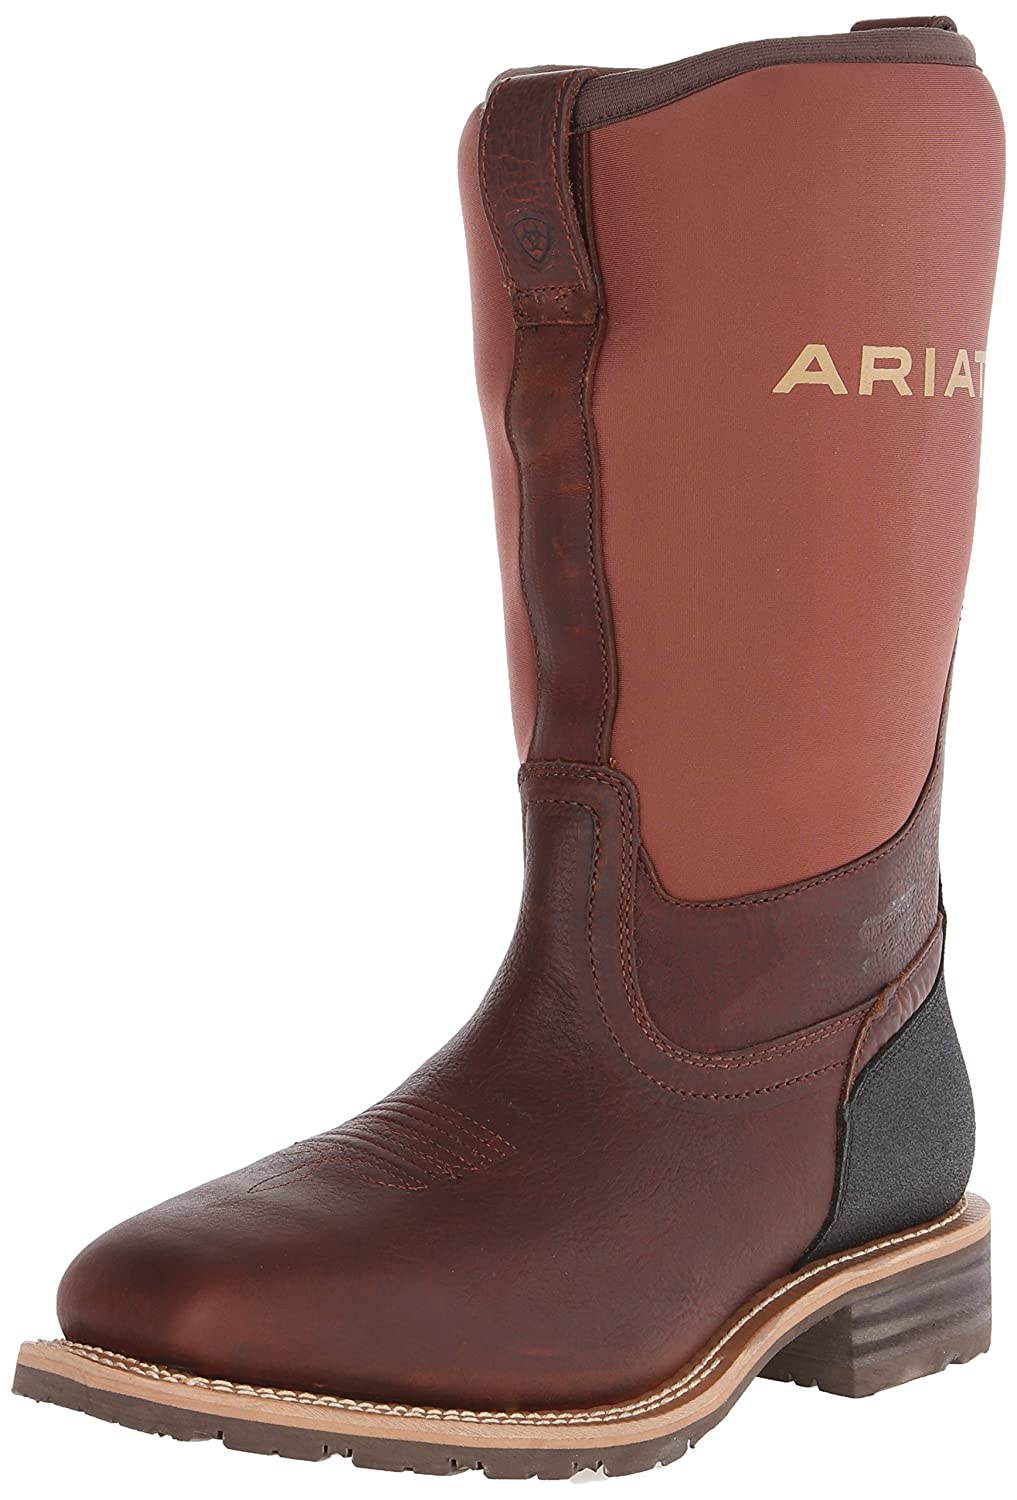 Ariat メンズ Oiled Brown/Brown Neoprene 10 2E US 10 2E USOiled Brown/Brown Neoprene B00IMPHE4U